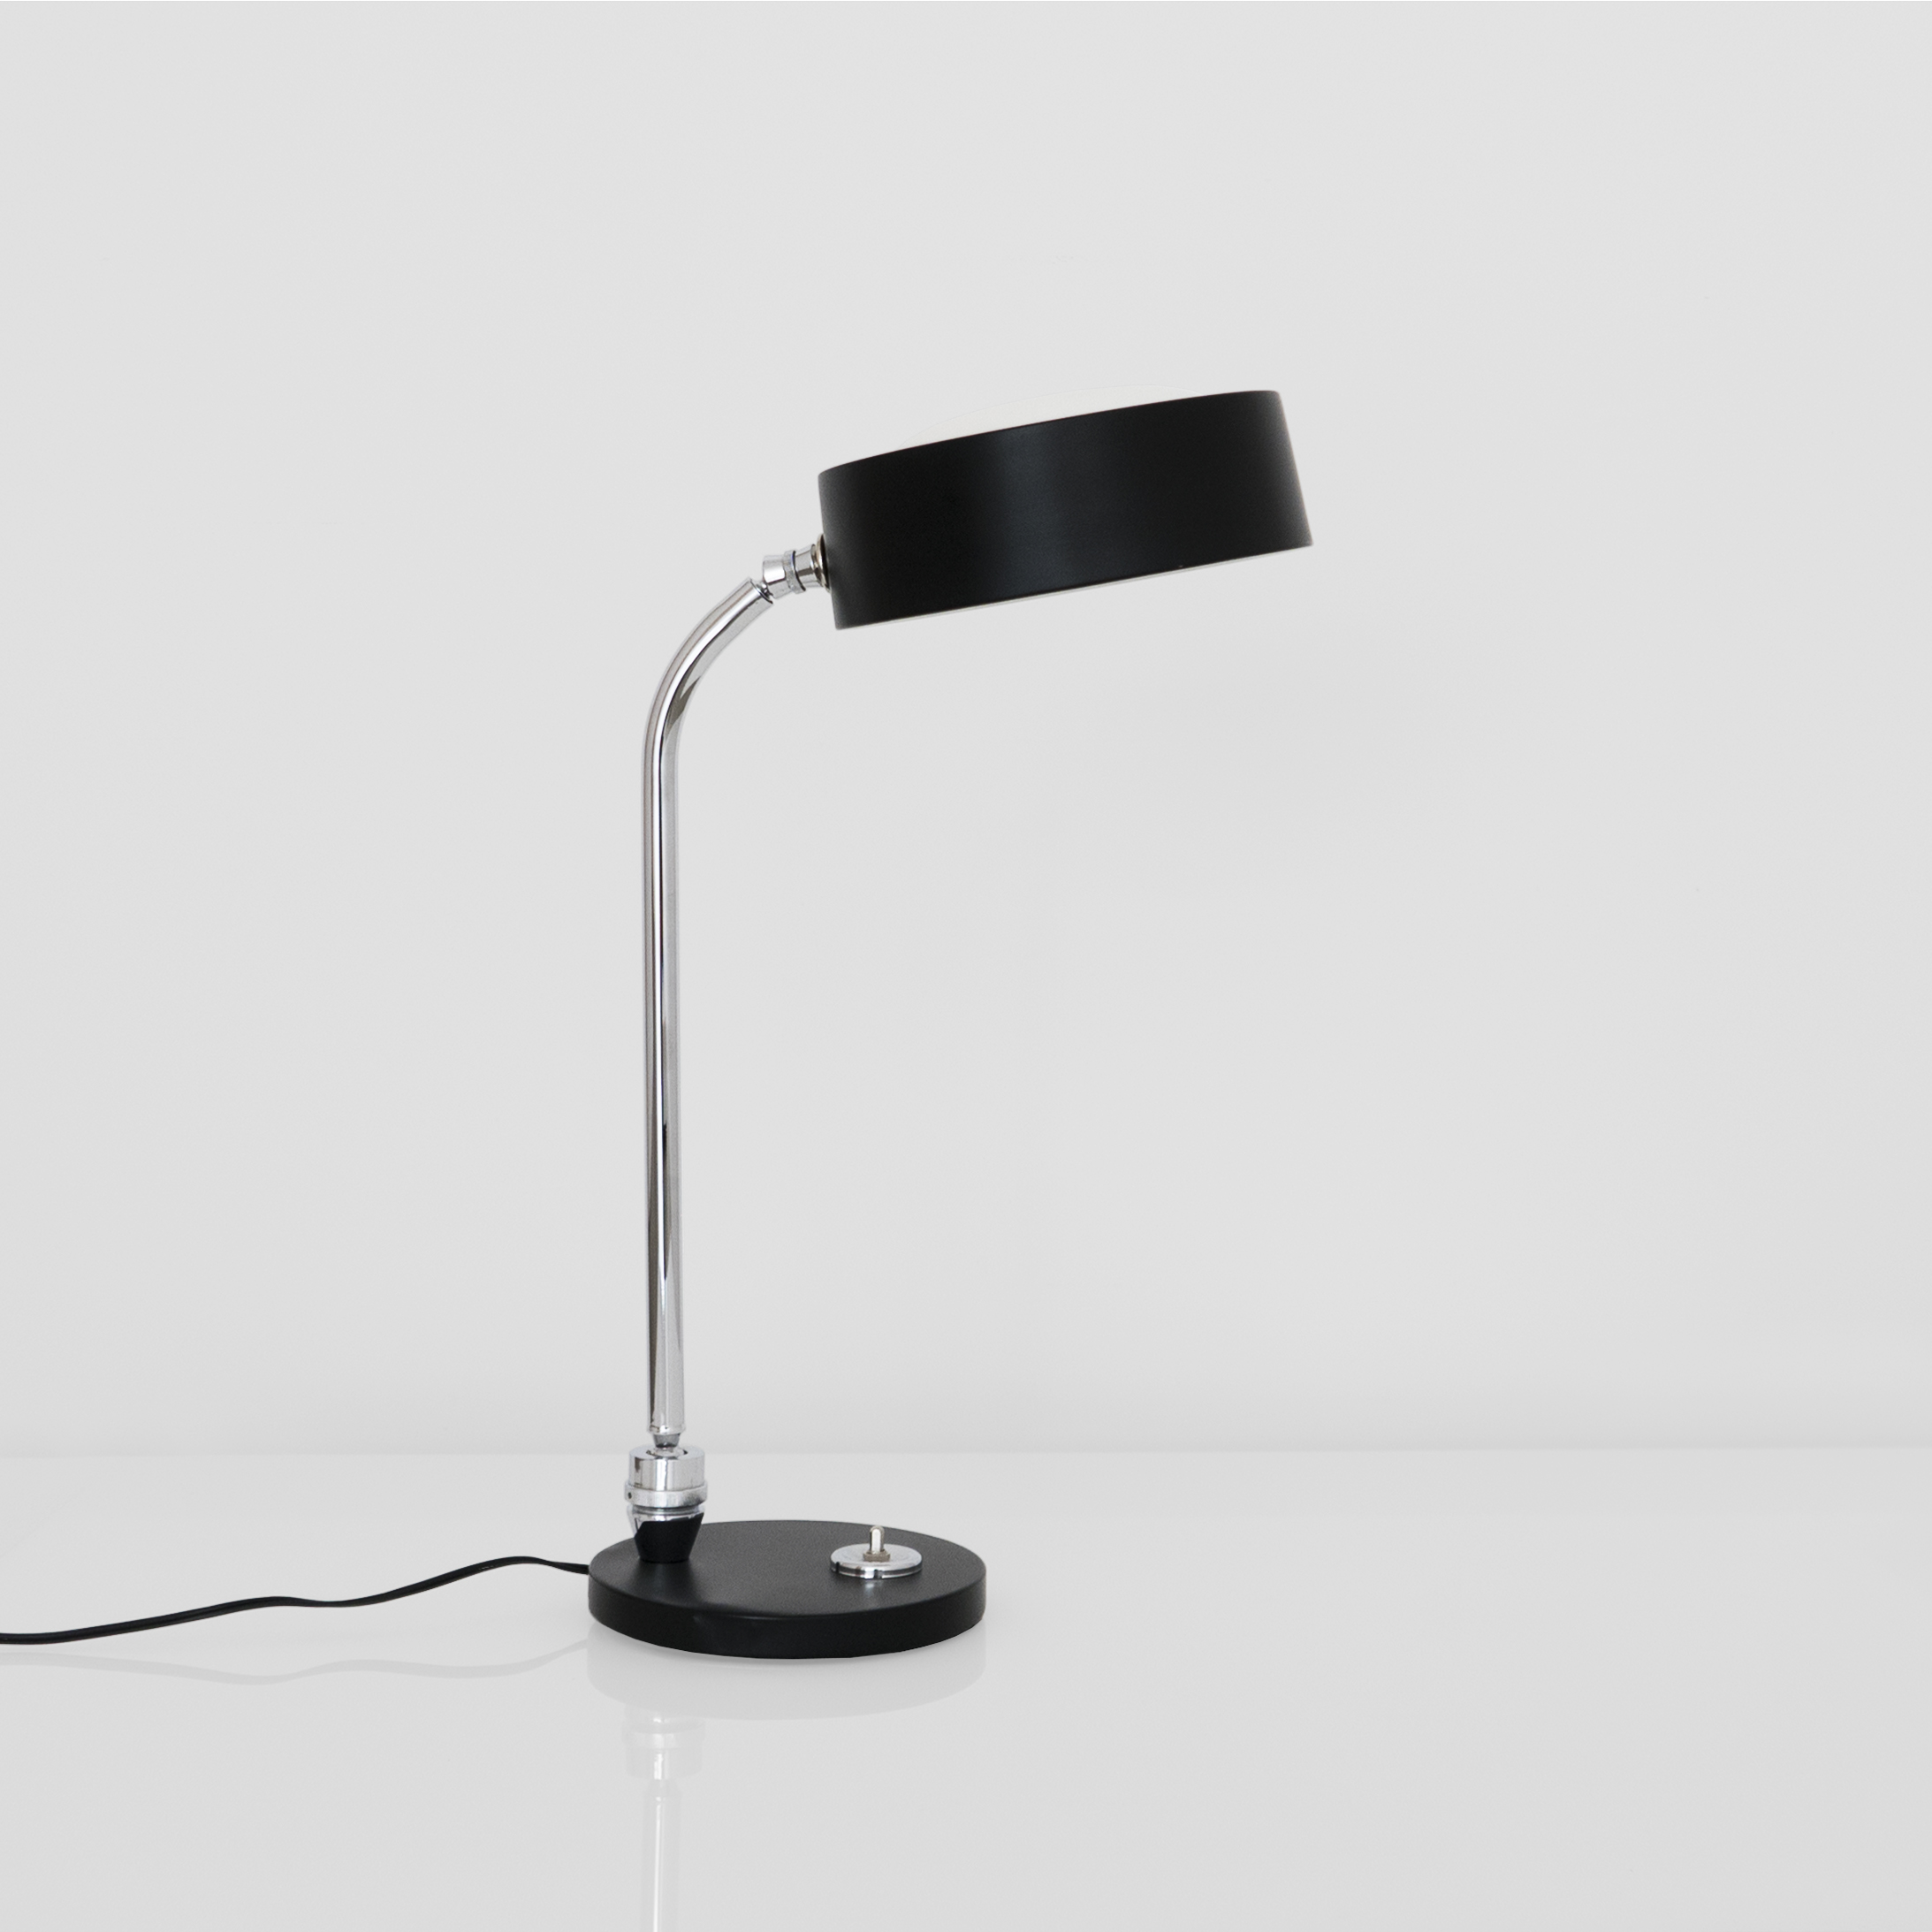 Charlotte Perriand, Table Lamp, c. 1960s, Chromed and lacquered metal, 21.5H x 7 Diameter inches_1.jpg